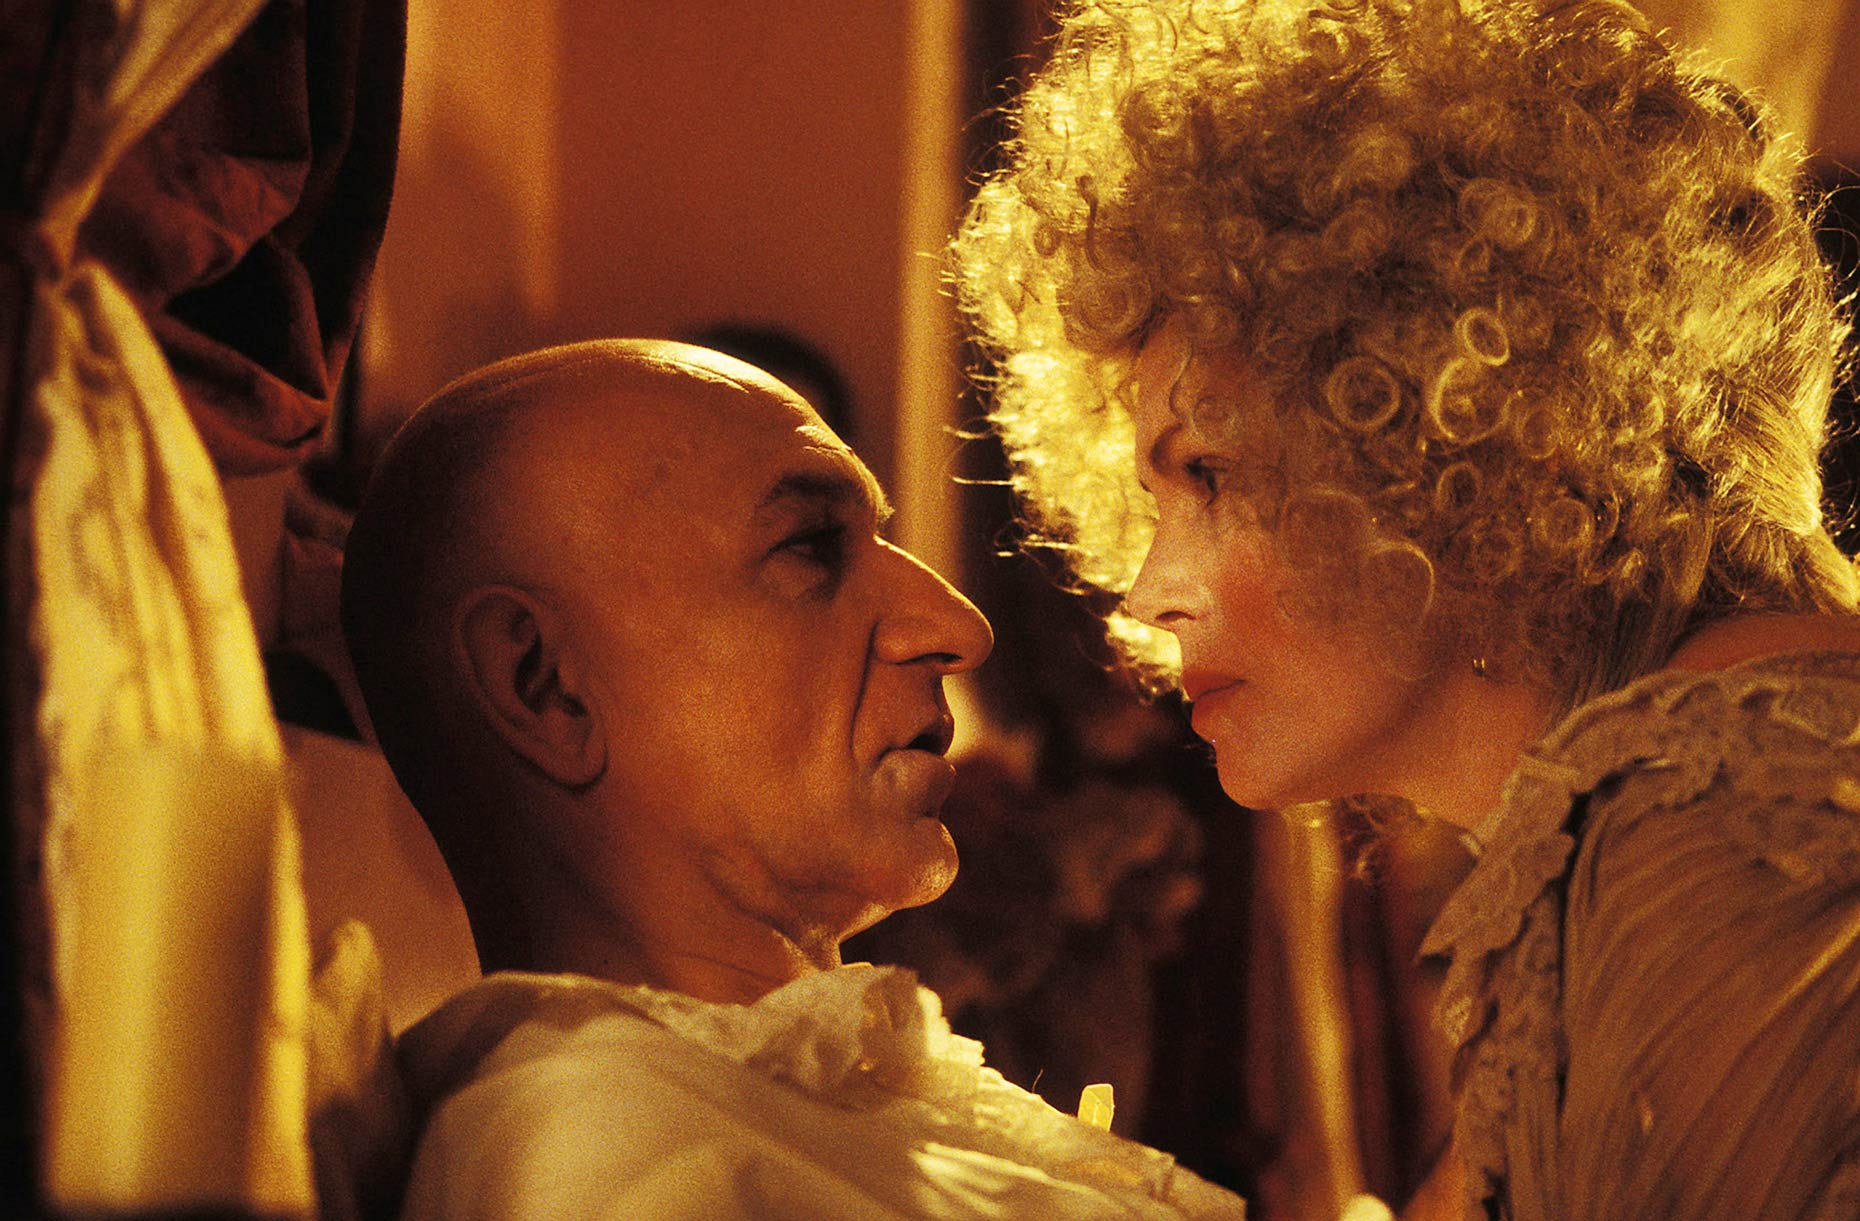 THE TALE OF SWEENEY TODD Ben Kingsley and Joanna Lumley